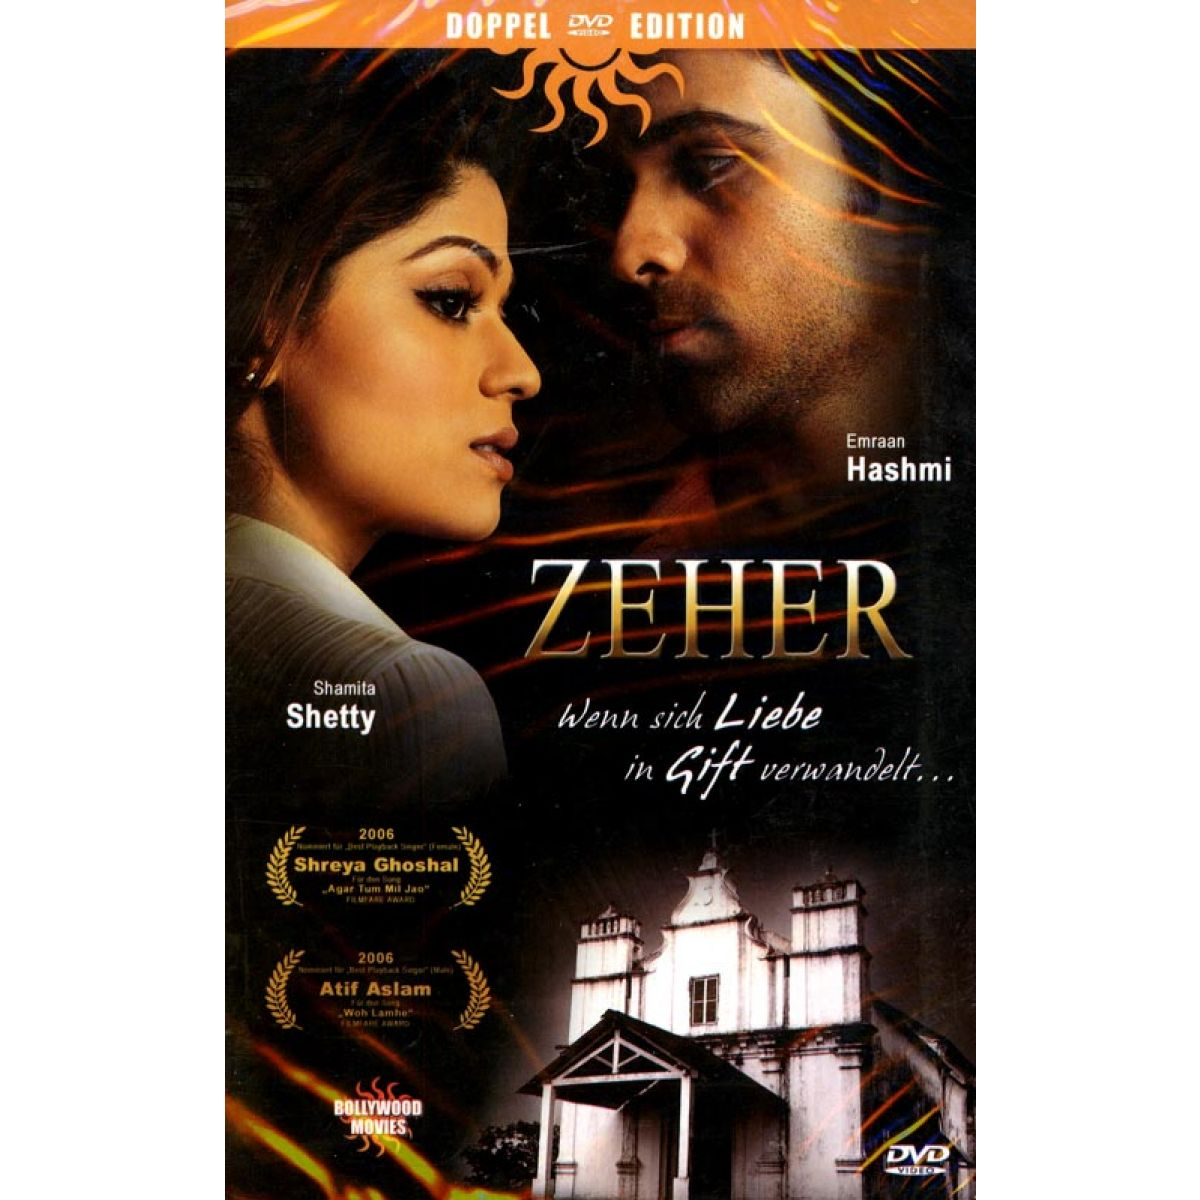 Zeher Zeher - dvd  german edition Zeher Soundtrack